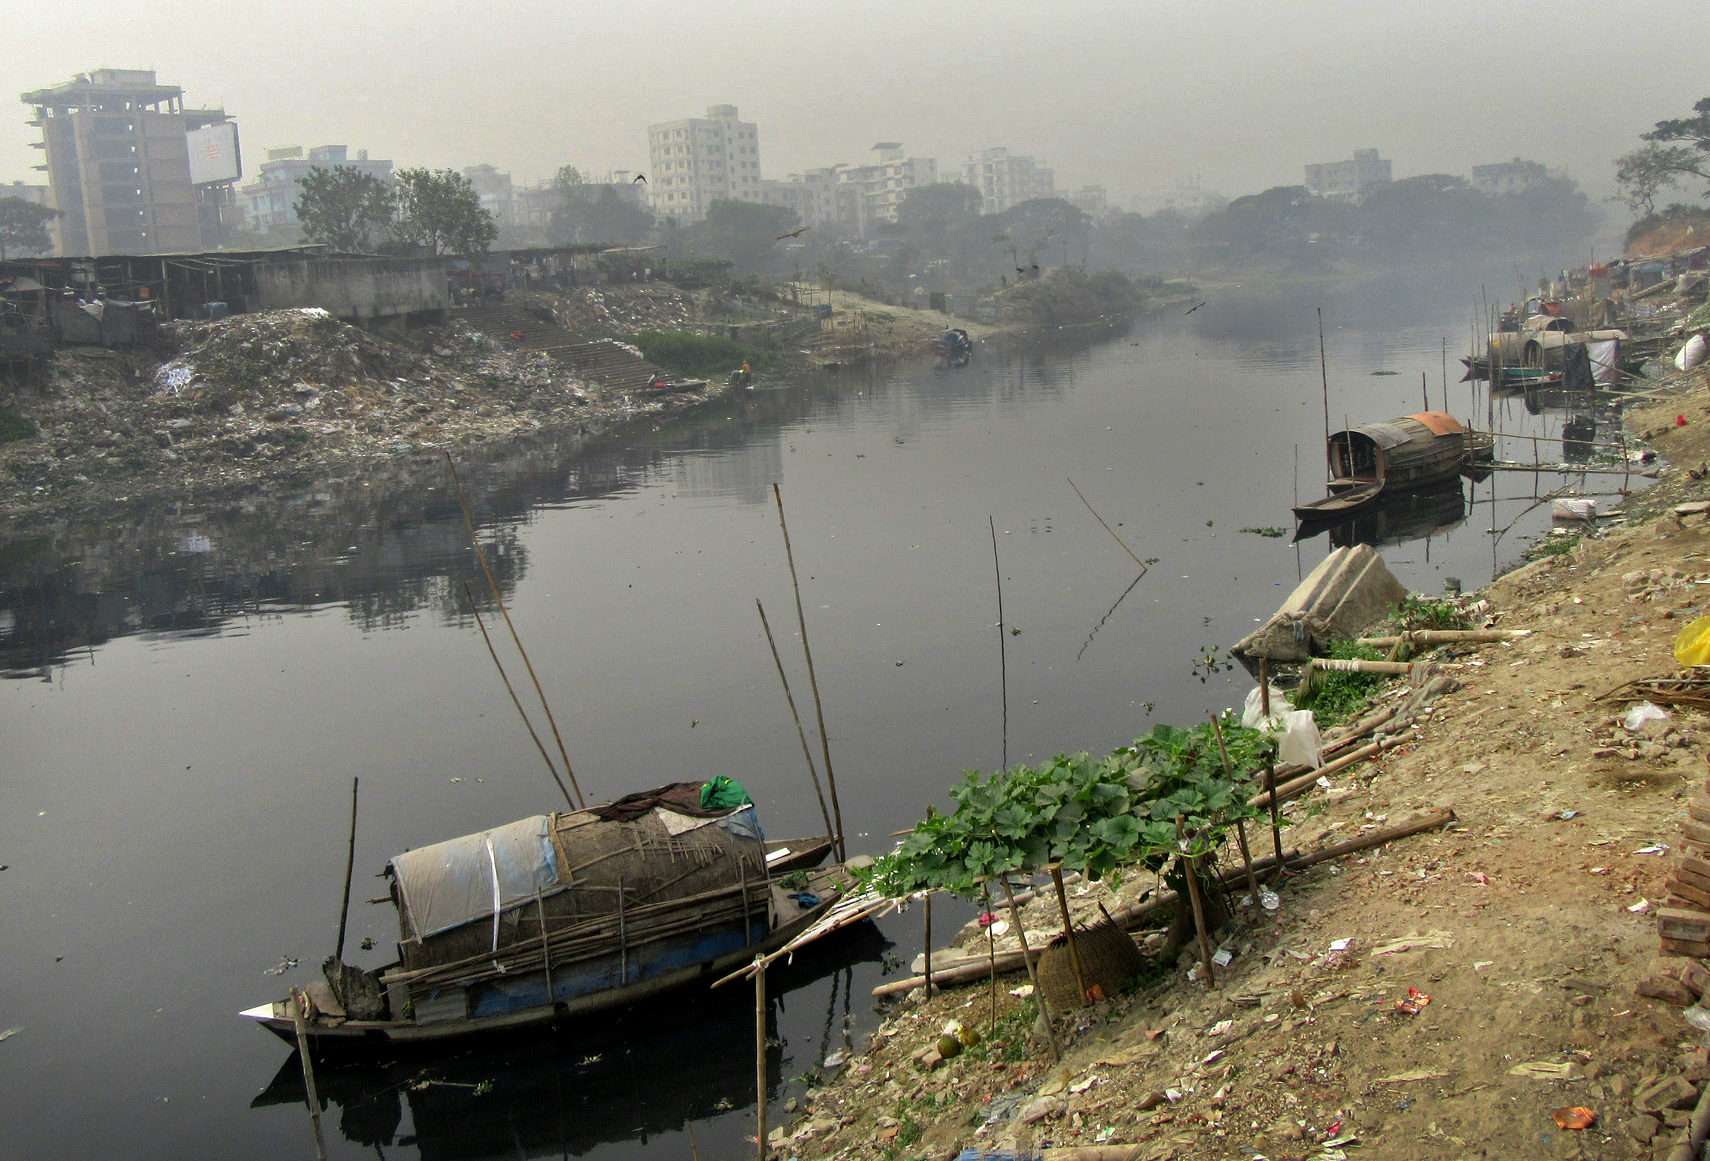 Pollution of Dhaka water ways; CRedit: Sonia Hoque/REACH